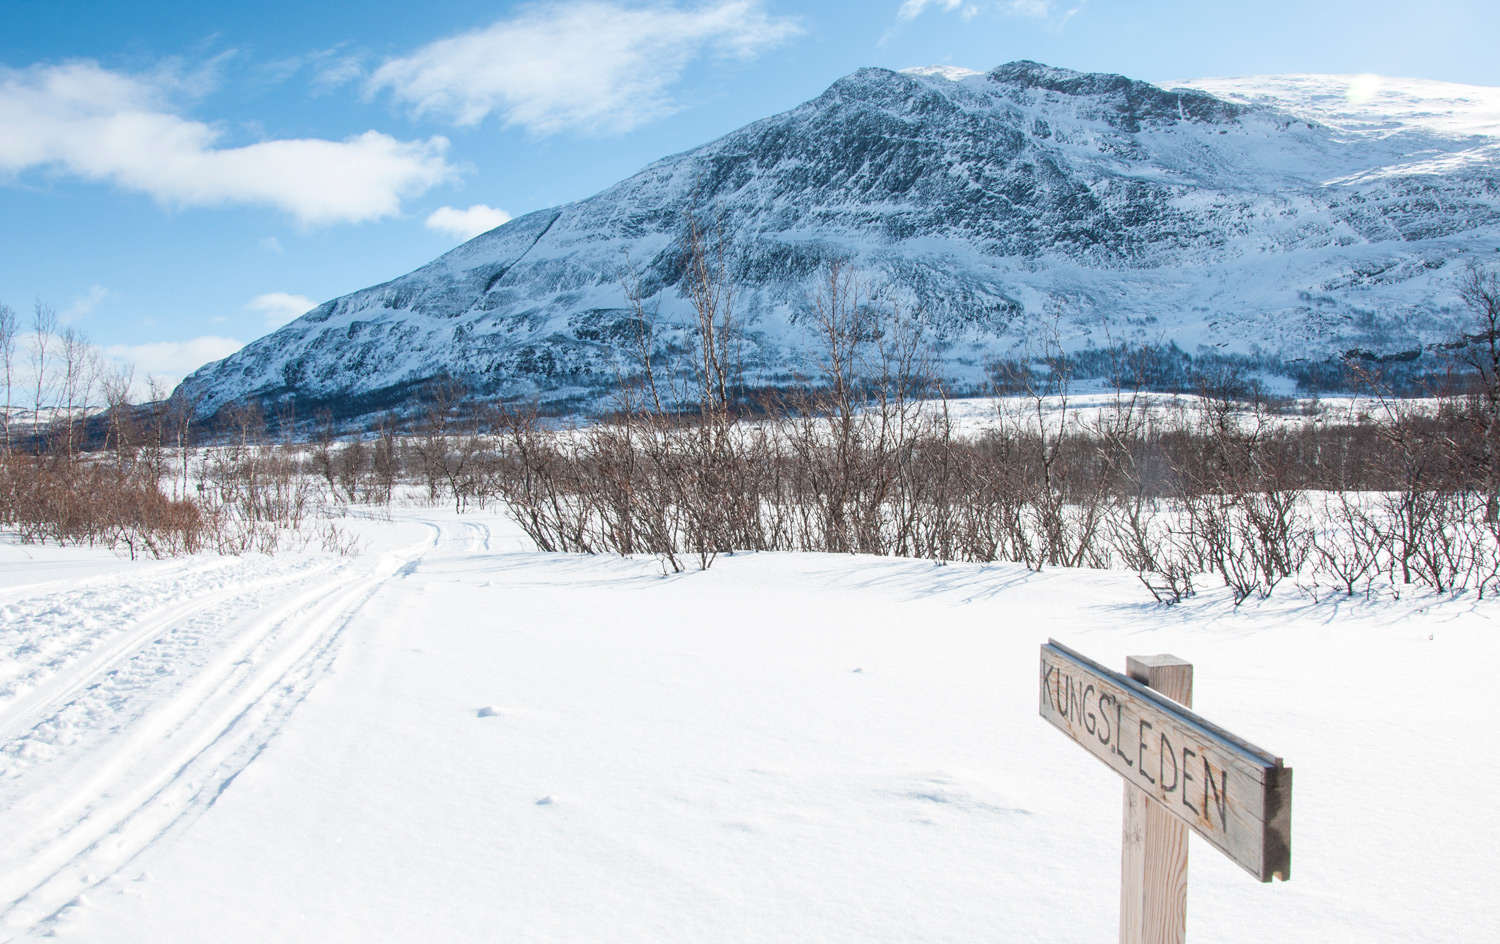 Skiing to Abiskojaure along the Kungsleden